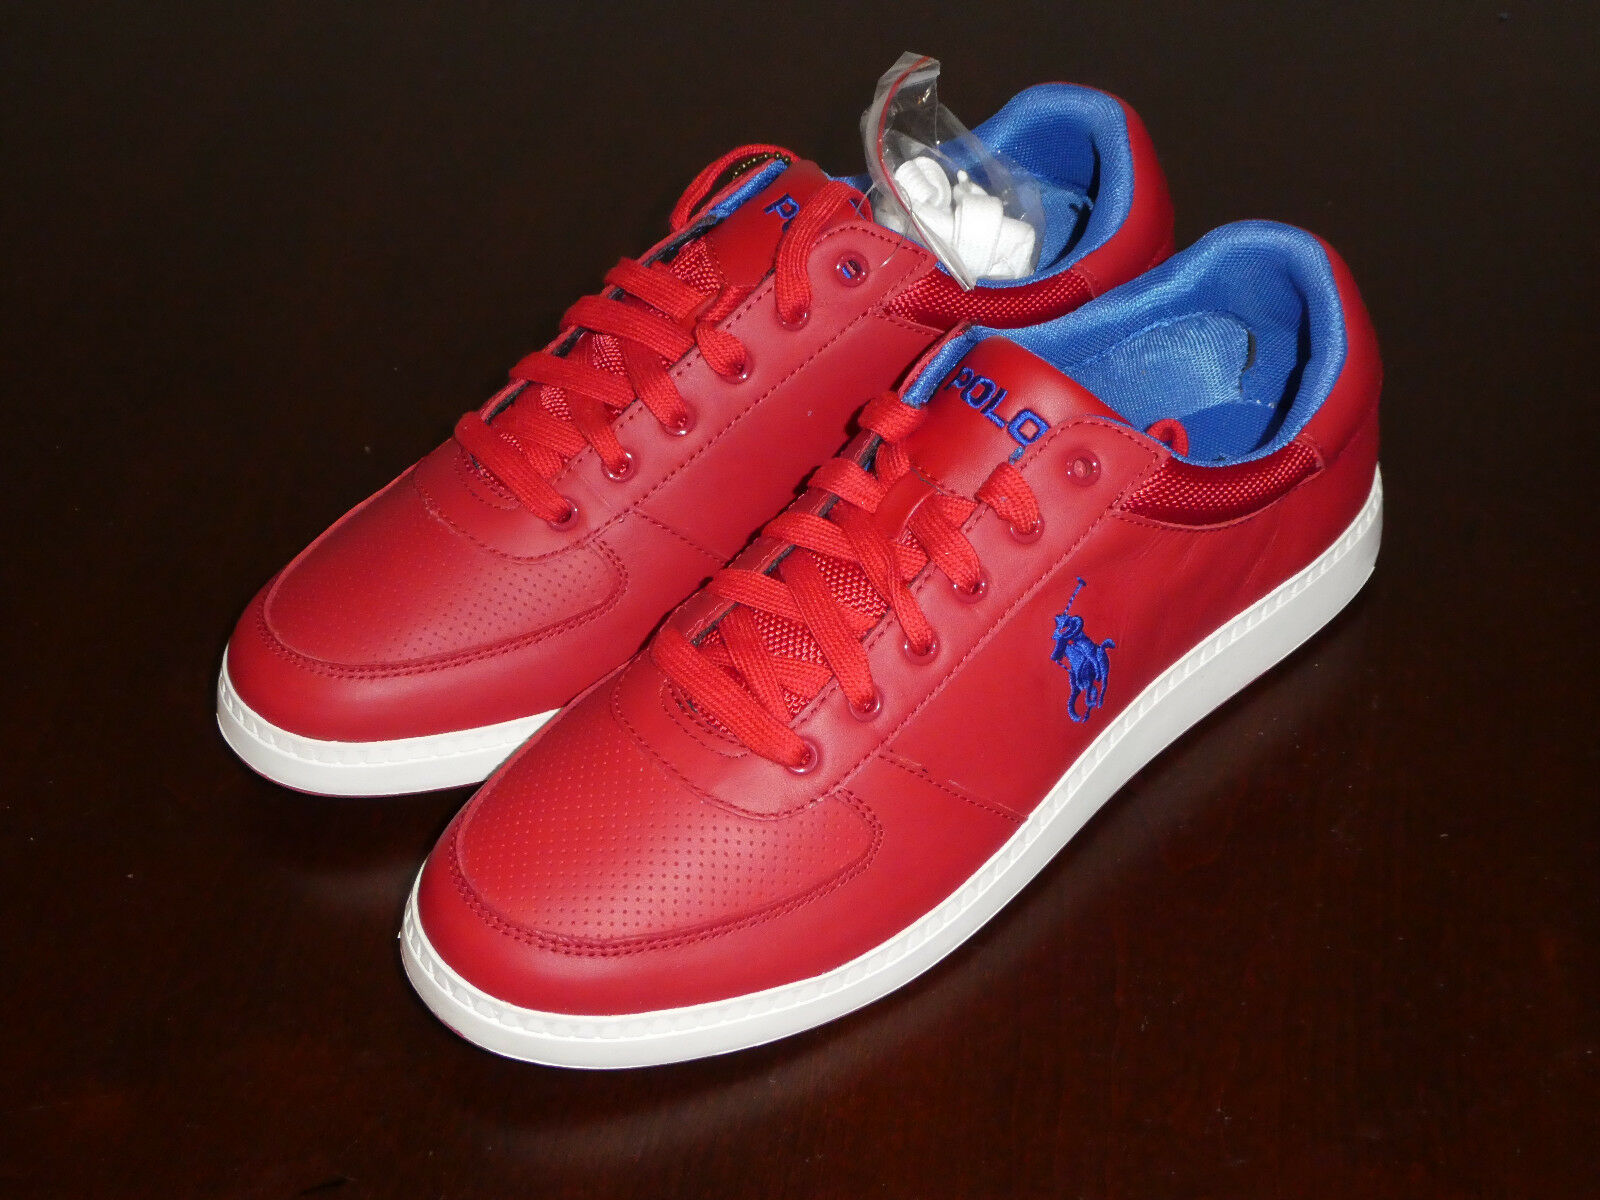 1c0d959e50cd Polo Ralph Lauren Hernando shoes sneakers new red Sport mens ...